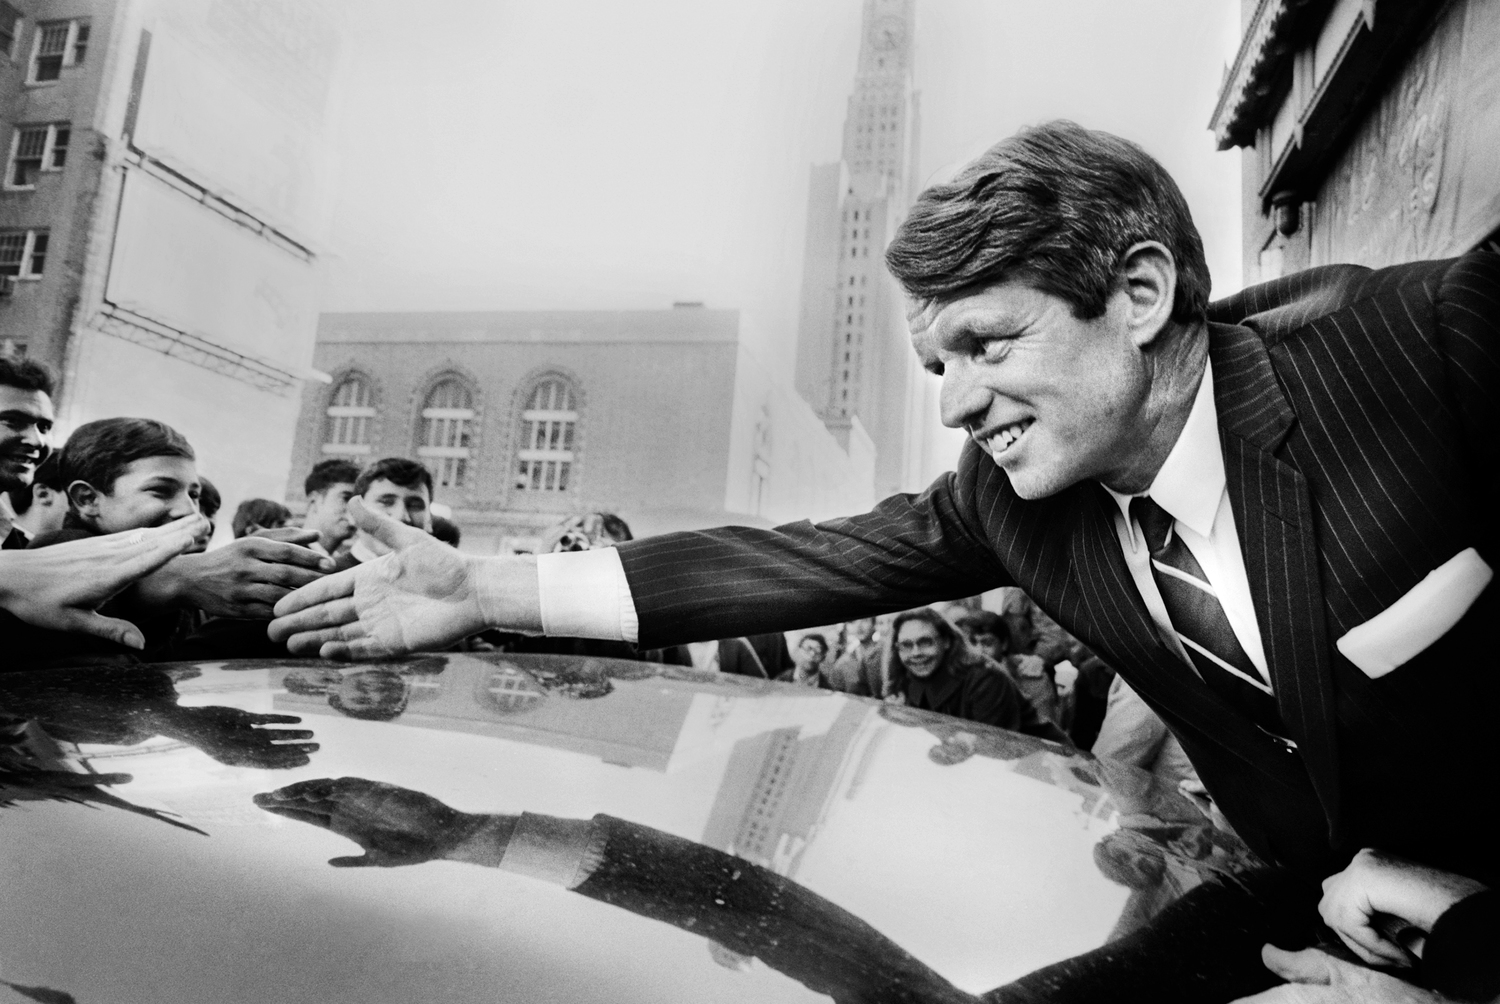 Robert Kennedy, Democratic Senator from New York, greets his supporters at Fort Greene, NY during his campaign for president. December 1, 1967  © Jean-Pierre Laffont